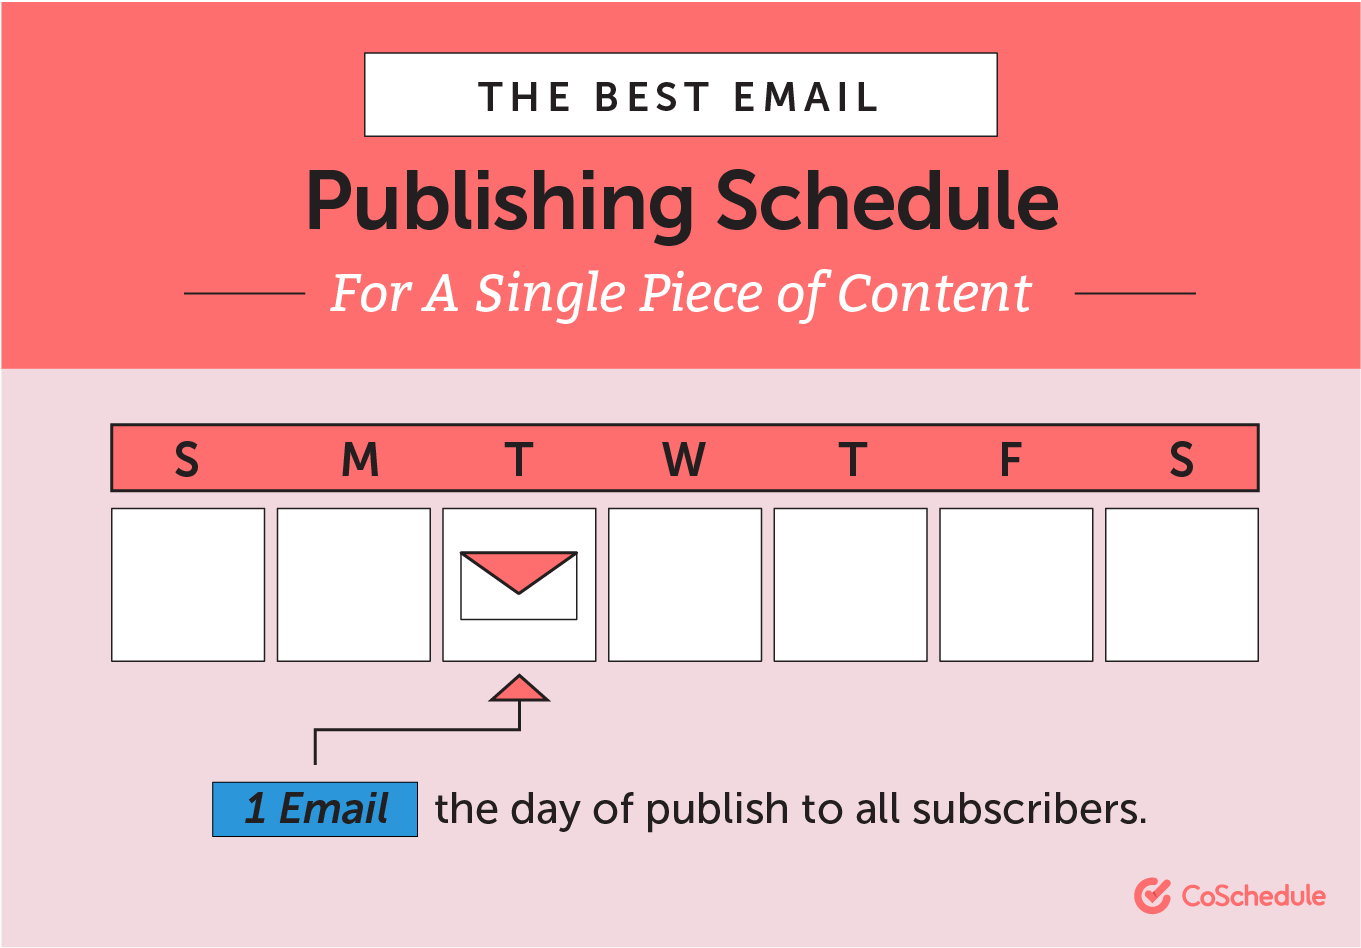 The best email publishing schedule